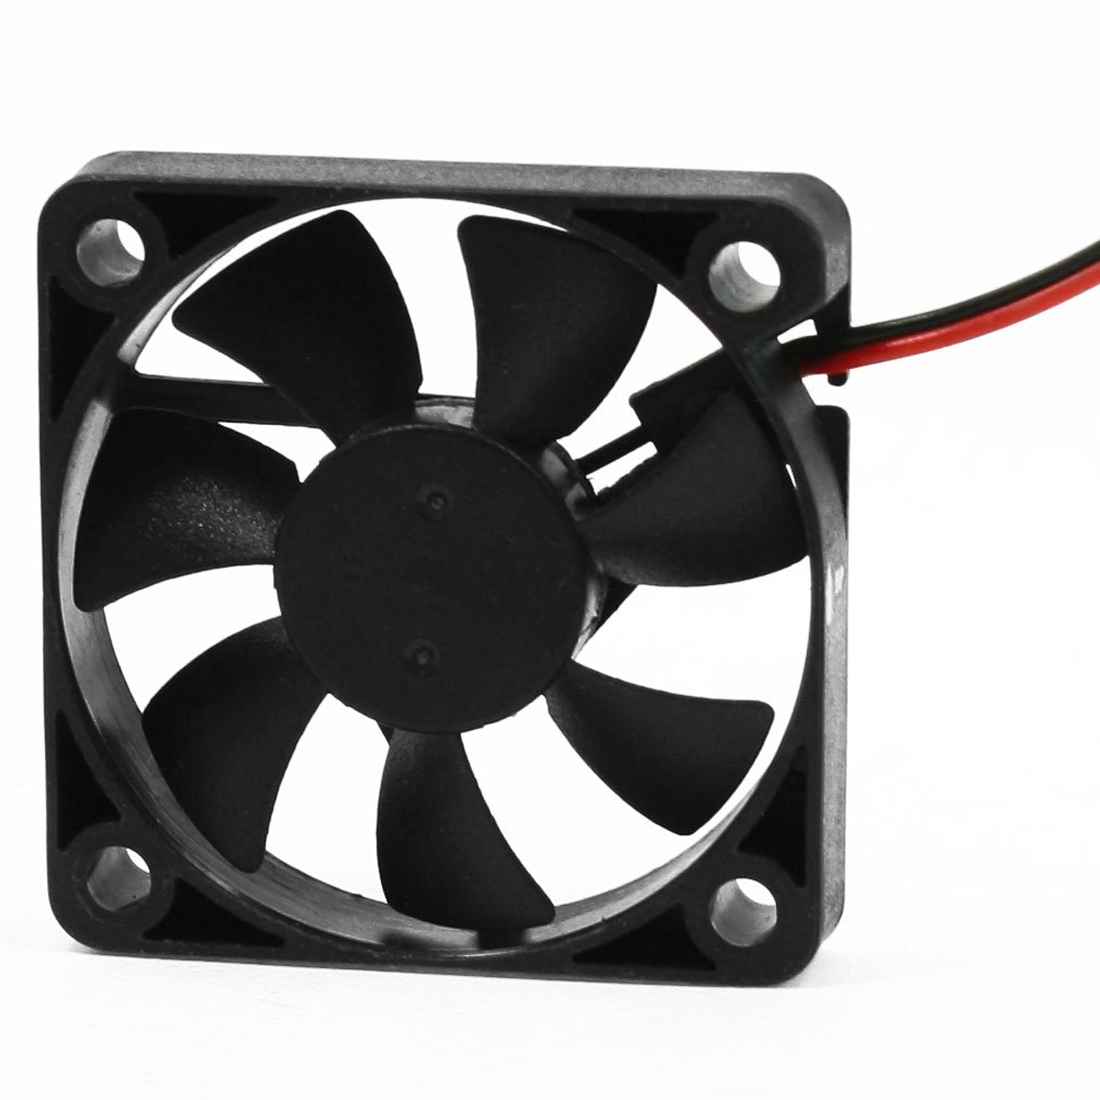 YOC Hot 50mm x 50mm x 10mm 5010 DC 12V 0.1A 2Pin Brushless Cooling Fan цена